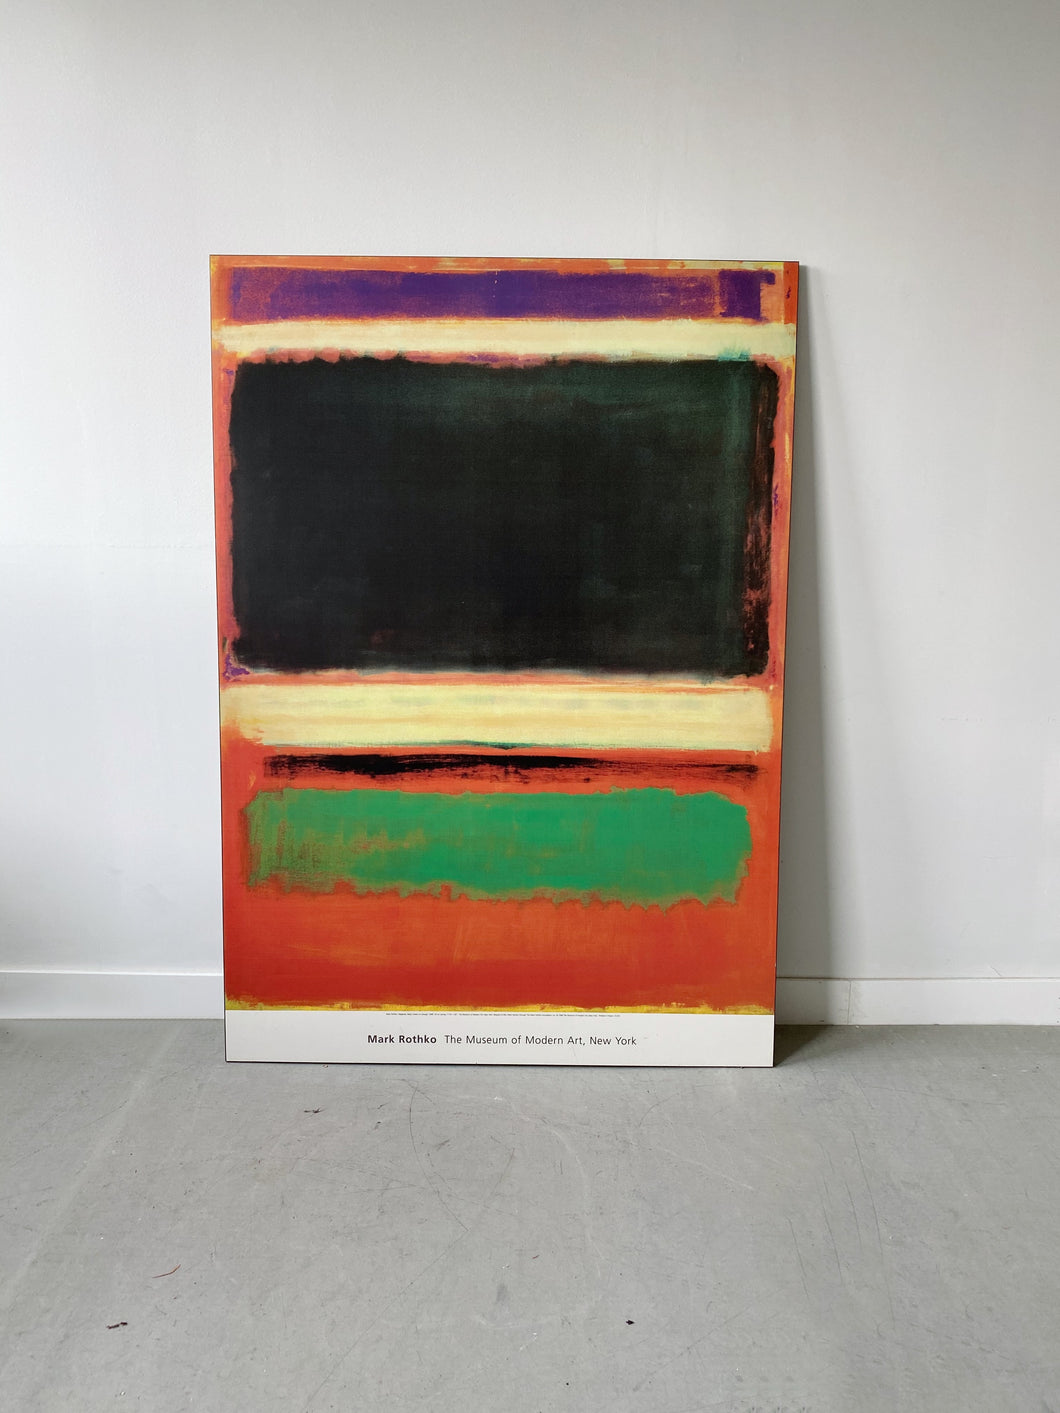 LARGE MARK ROTHKO POSTER, THE MUSEUM OF MODERN ART, NY